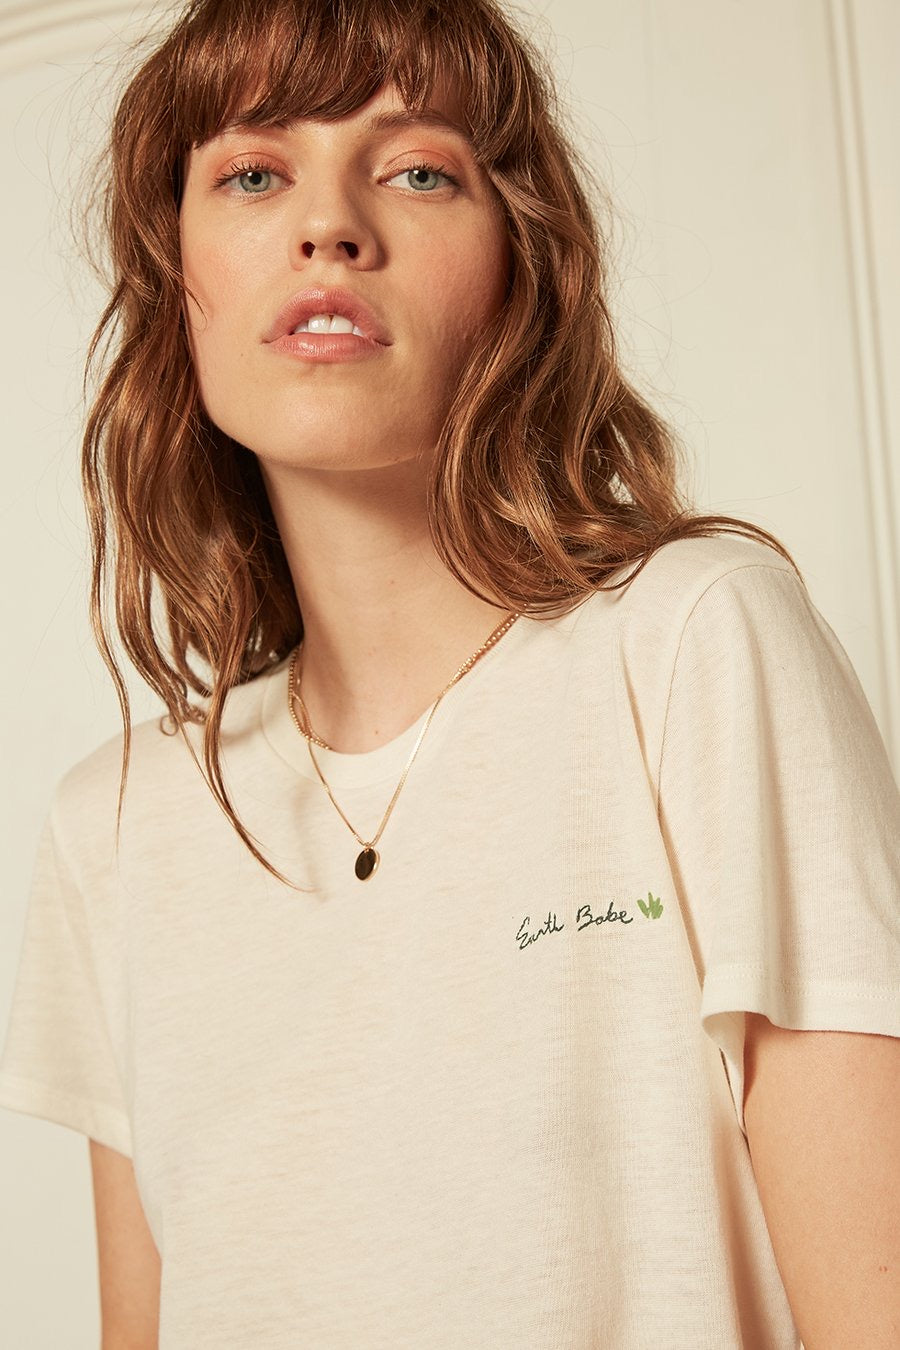 Boyish Jeans The Lennon Earth Babe Tee in Off White